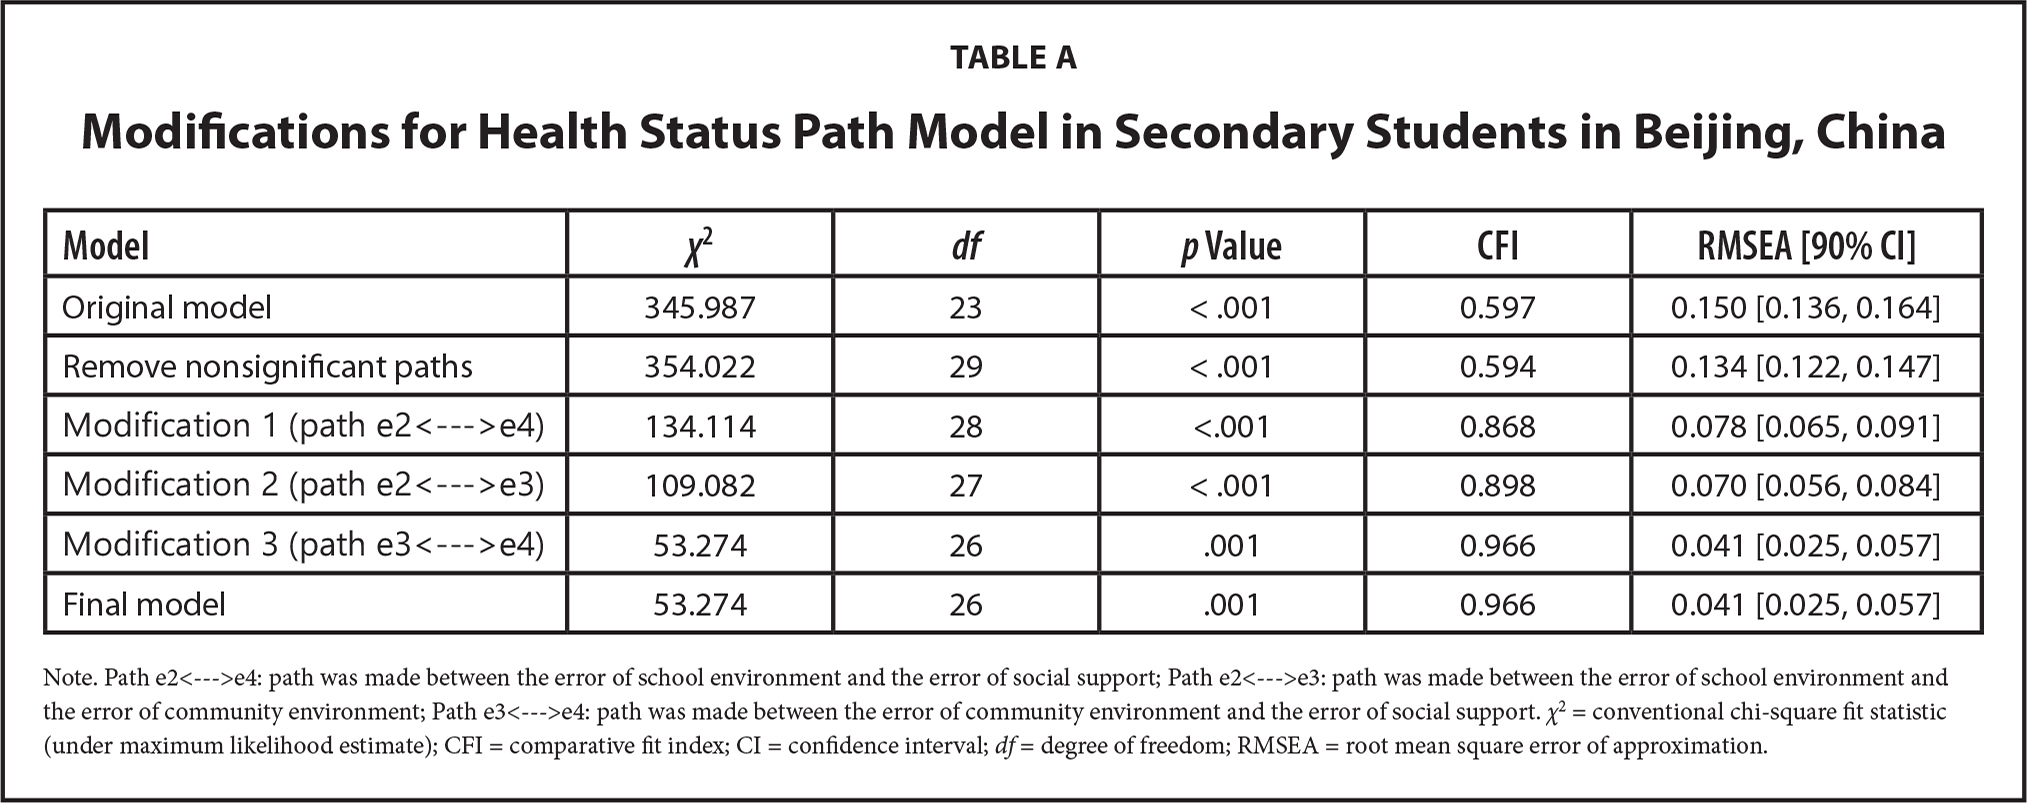 Modifications for Health Status Path Model in Secondary Students in Beijing, China